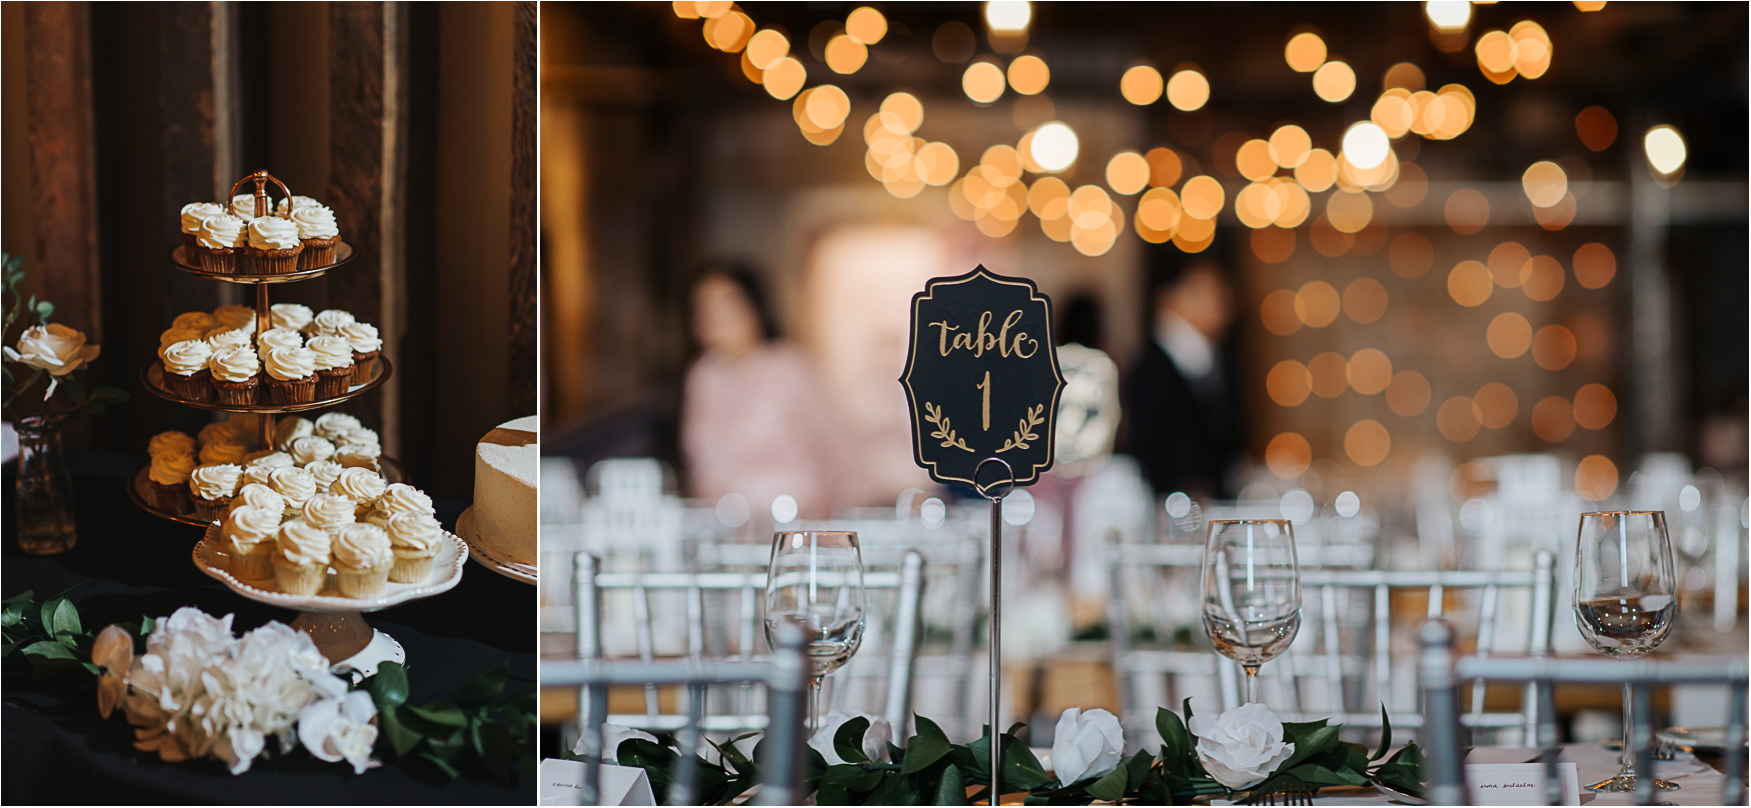 Toronto's Distrillery District Wedding at The Loft Wedding decor details